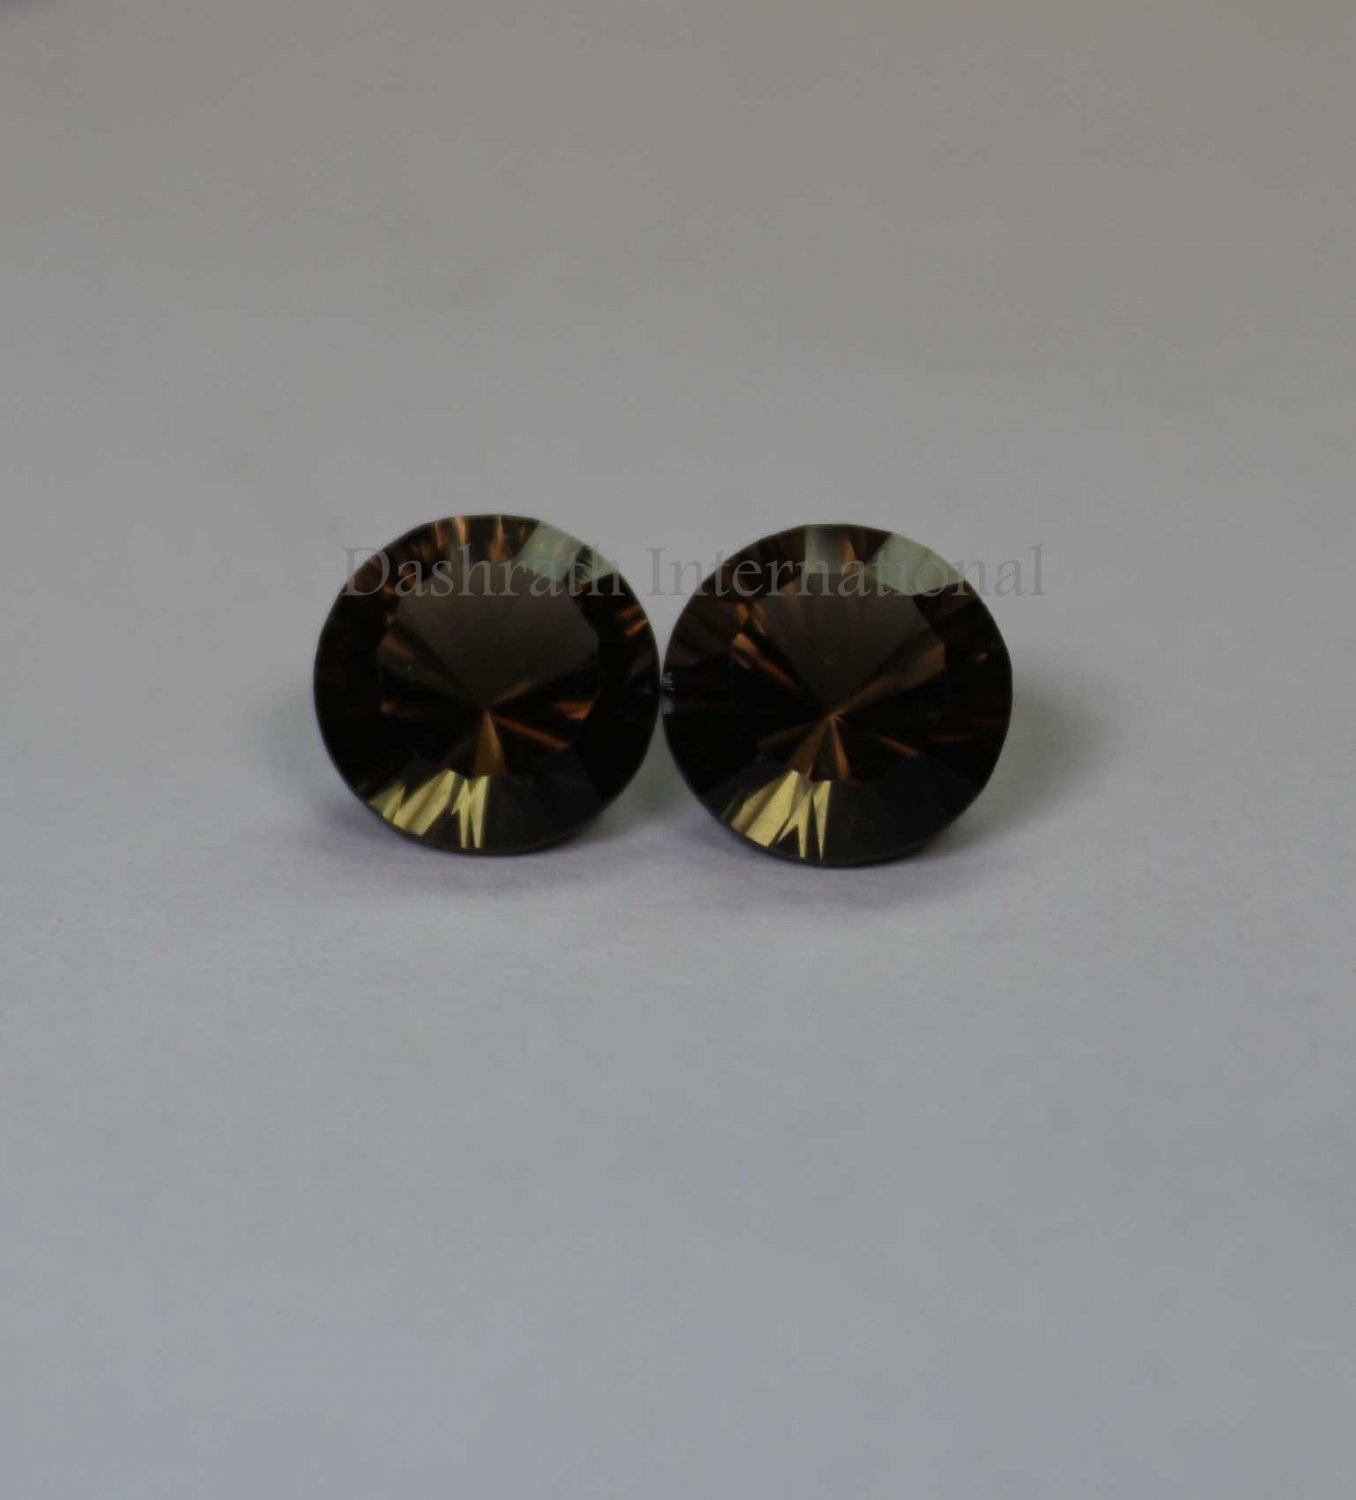 14mmNatural Smoky Quartz Concave Cut Round 2 Piece (1 Pair )   (SI) Top Quality  Loose Gemstone